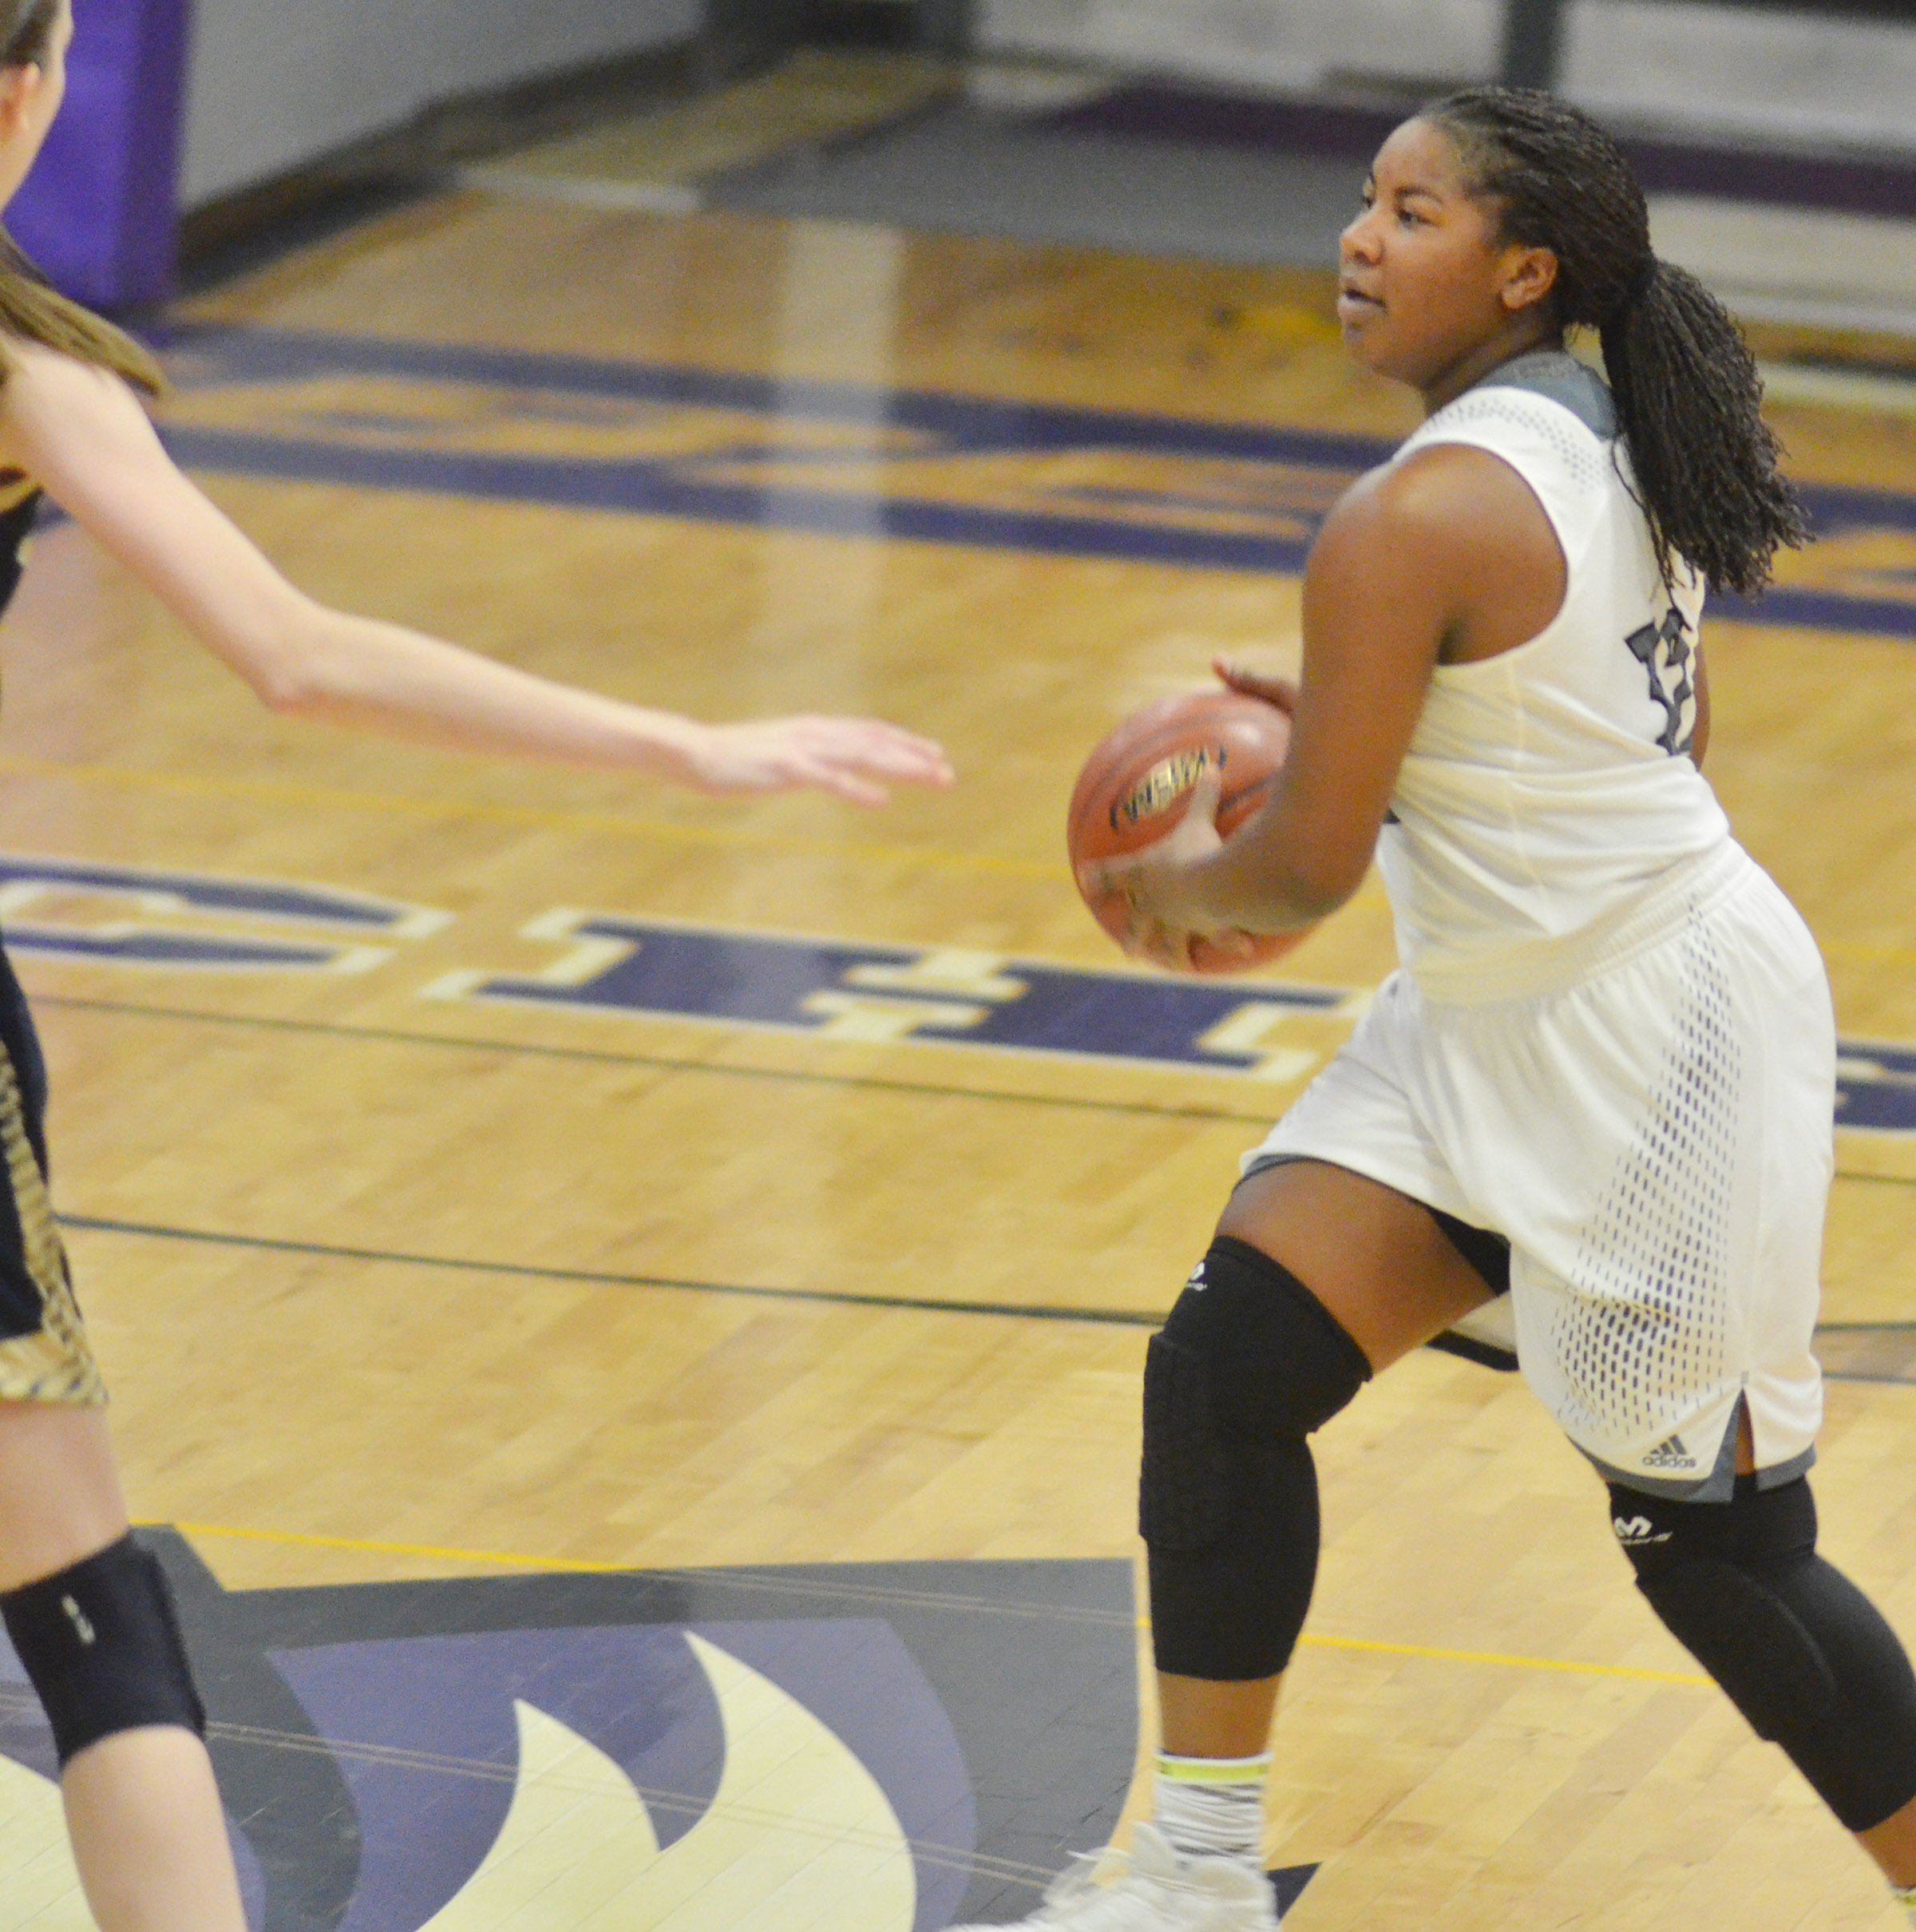 CHS senior Nena Barnett passes the ball.